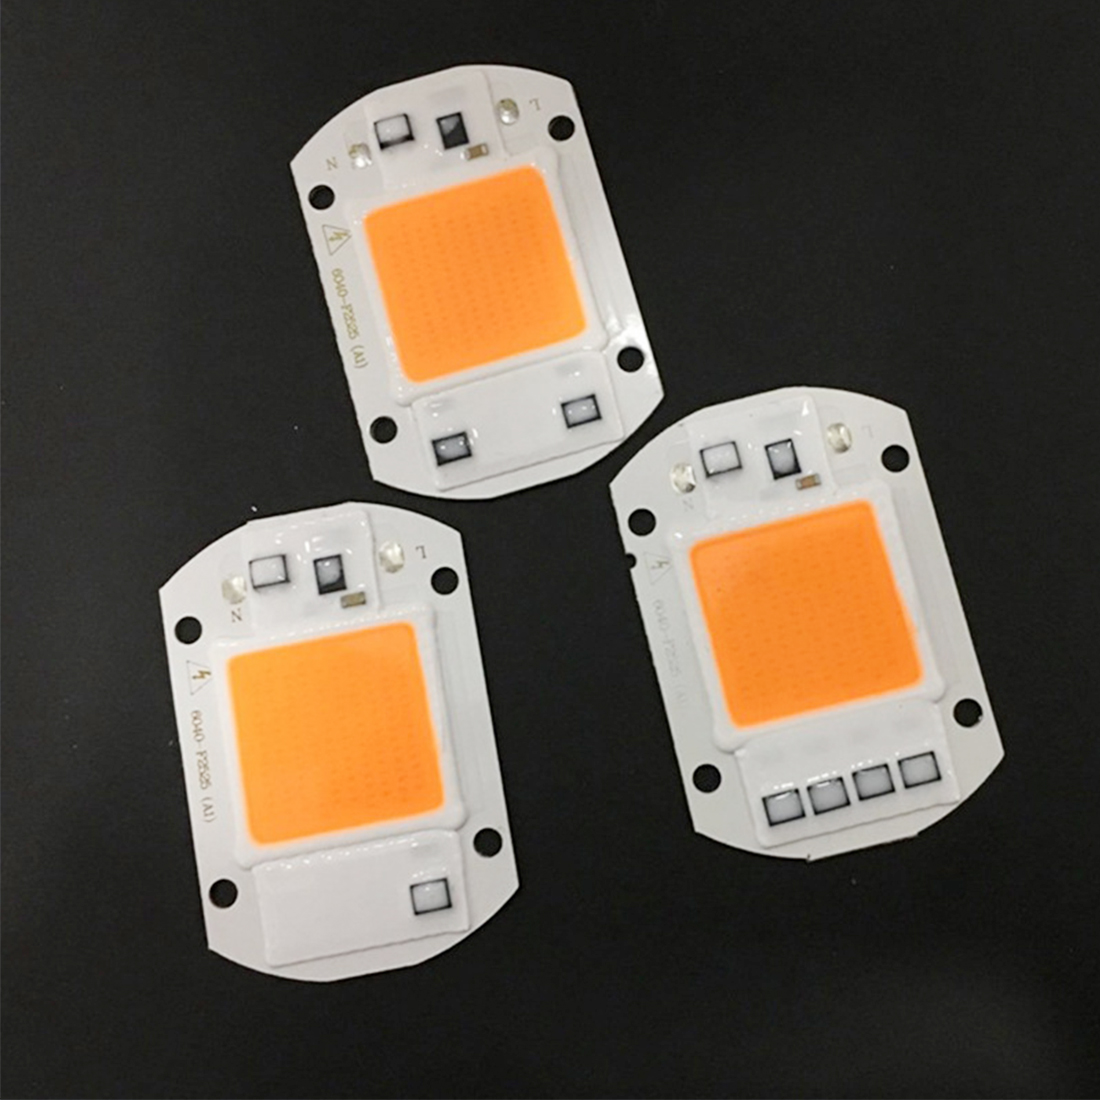 1pcs 220/110V 20/30/50W LED COB Chip For Grow Plant Light Full Spectrum Input For Indoor Plant Seedling Grow And Flower